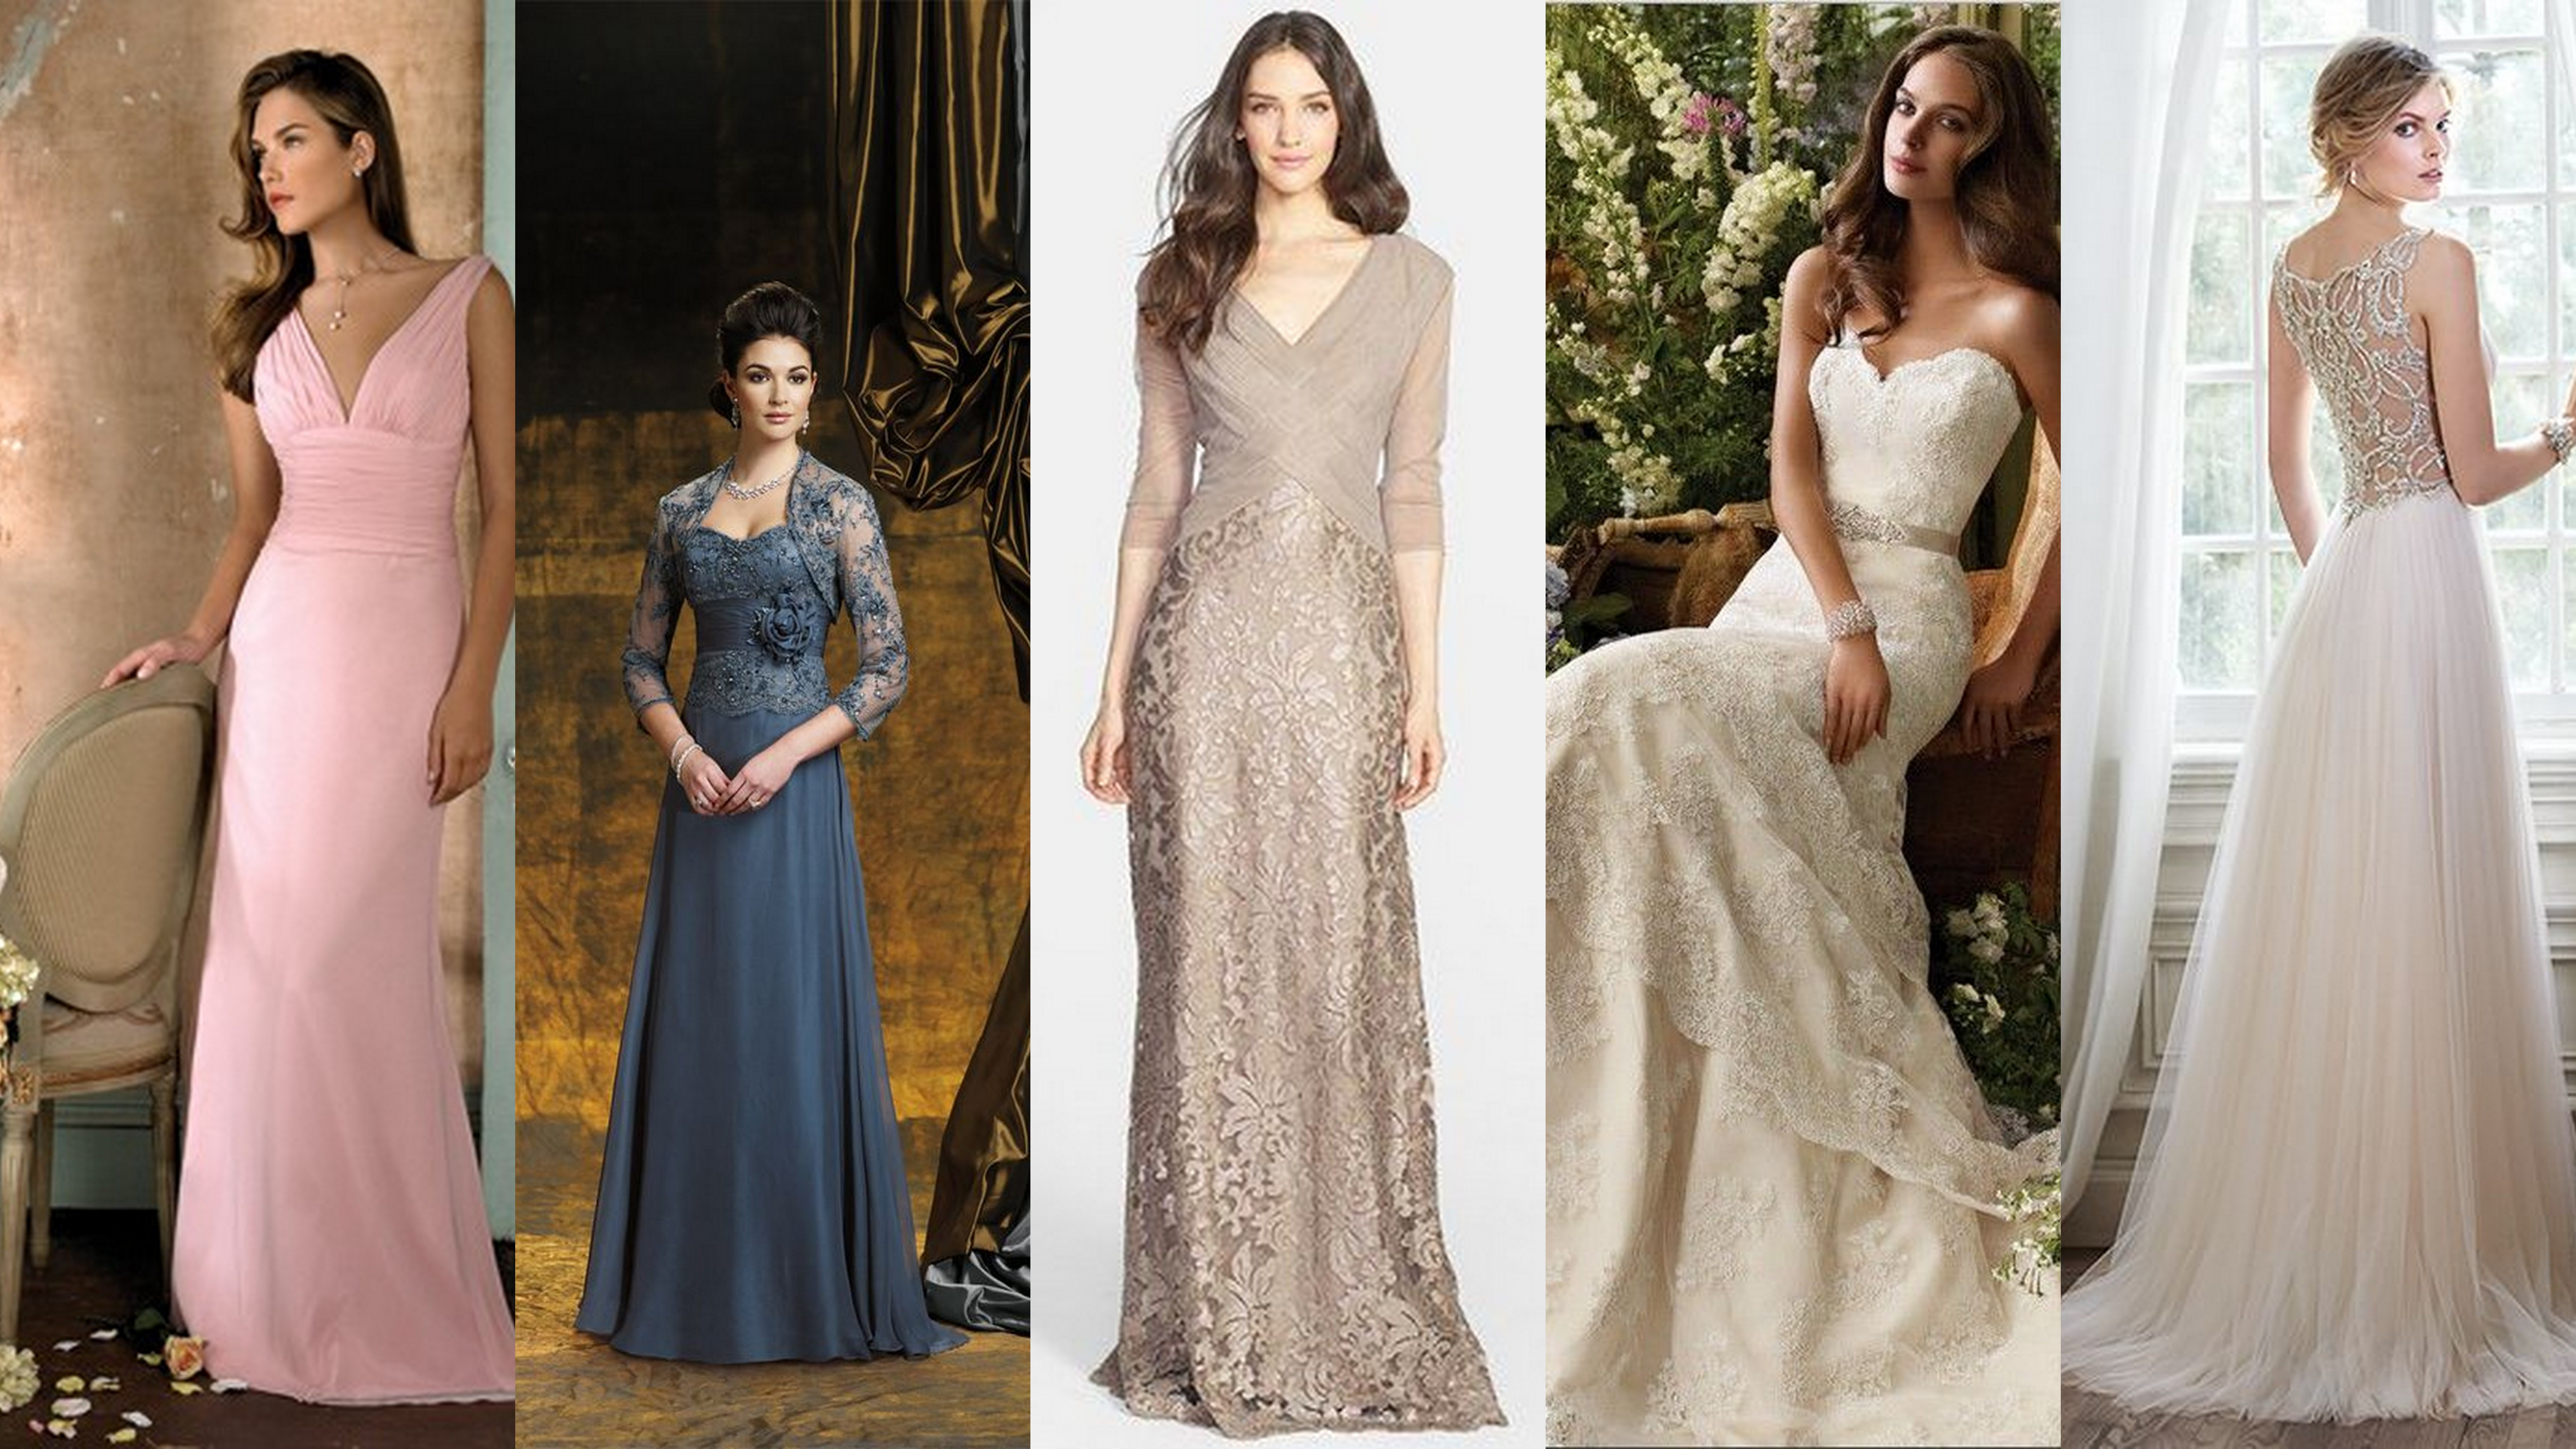 Wedding Gowns For Petite Women: Top 5 Tips To Find Ideal Wedding Dress For Your Body Type